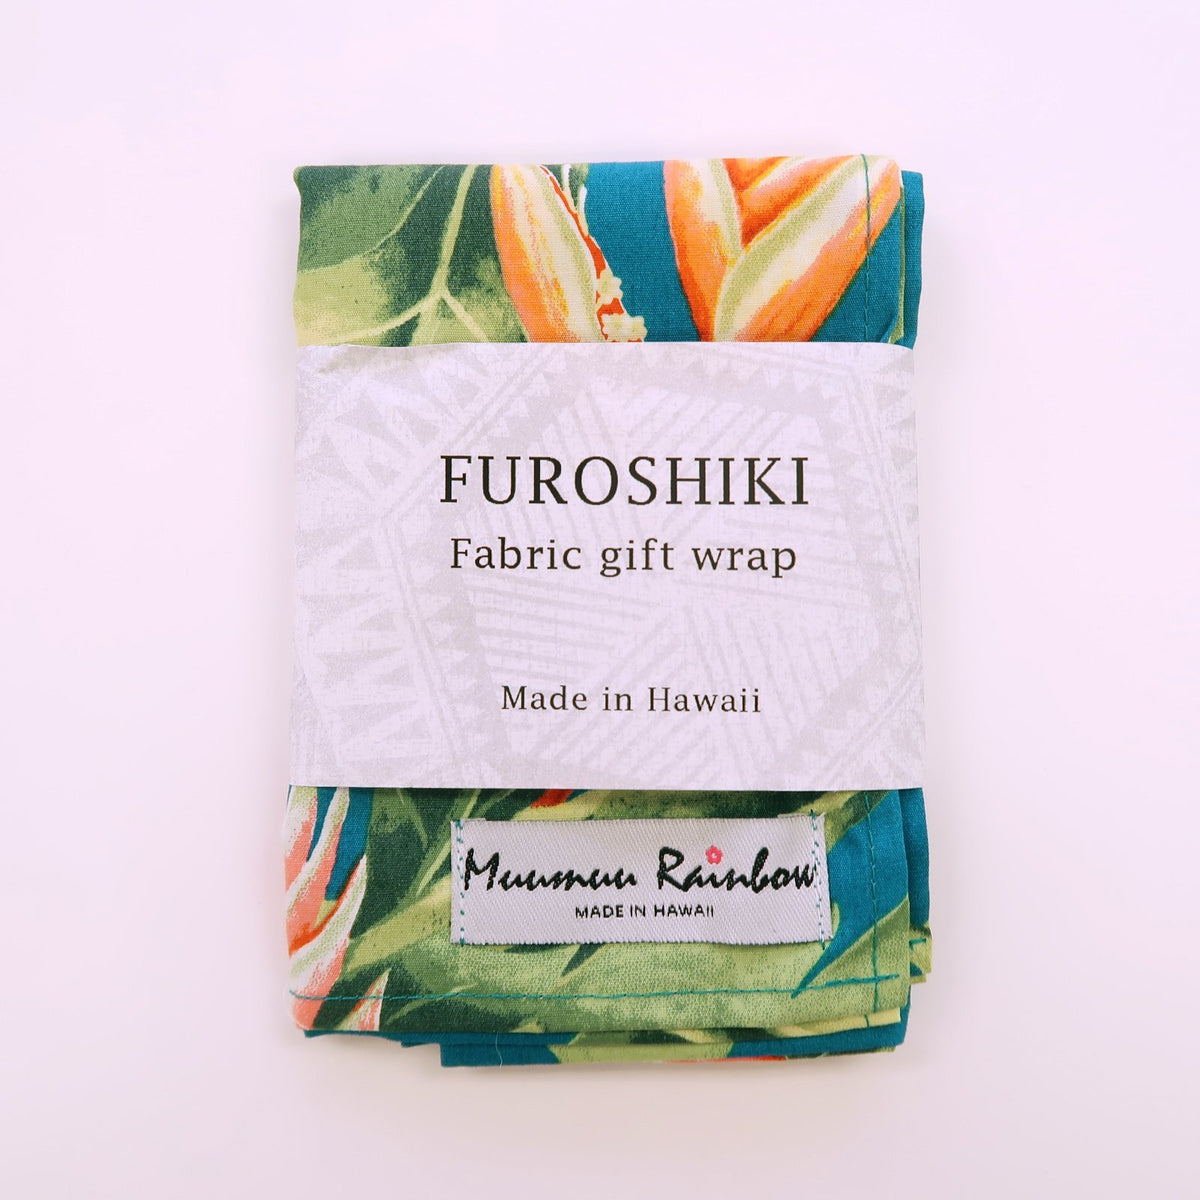 Birds of Paradise Floral Print Gift Wrap Furoshiki | Eco Wrapping Cloth Small